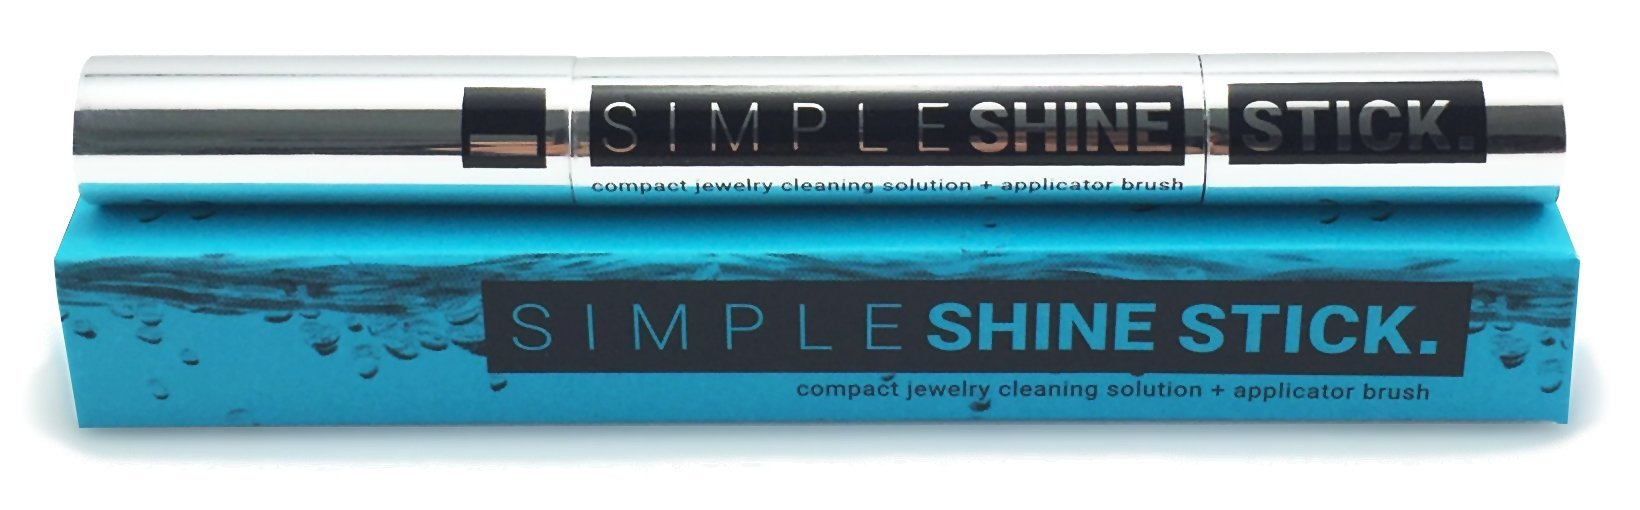 NEW Simple Shine Stick | Compact Diamond Cleaning Brush and Jewelry Cleaner Solution All-In-One by Simple Shine (Image #3)